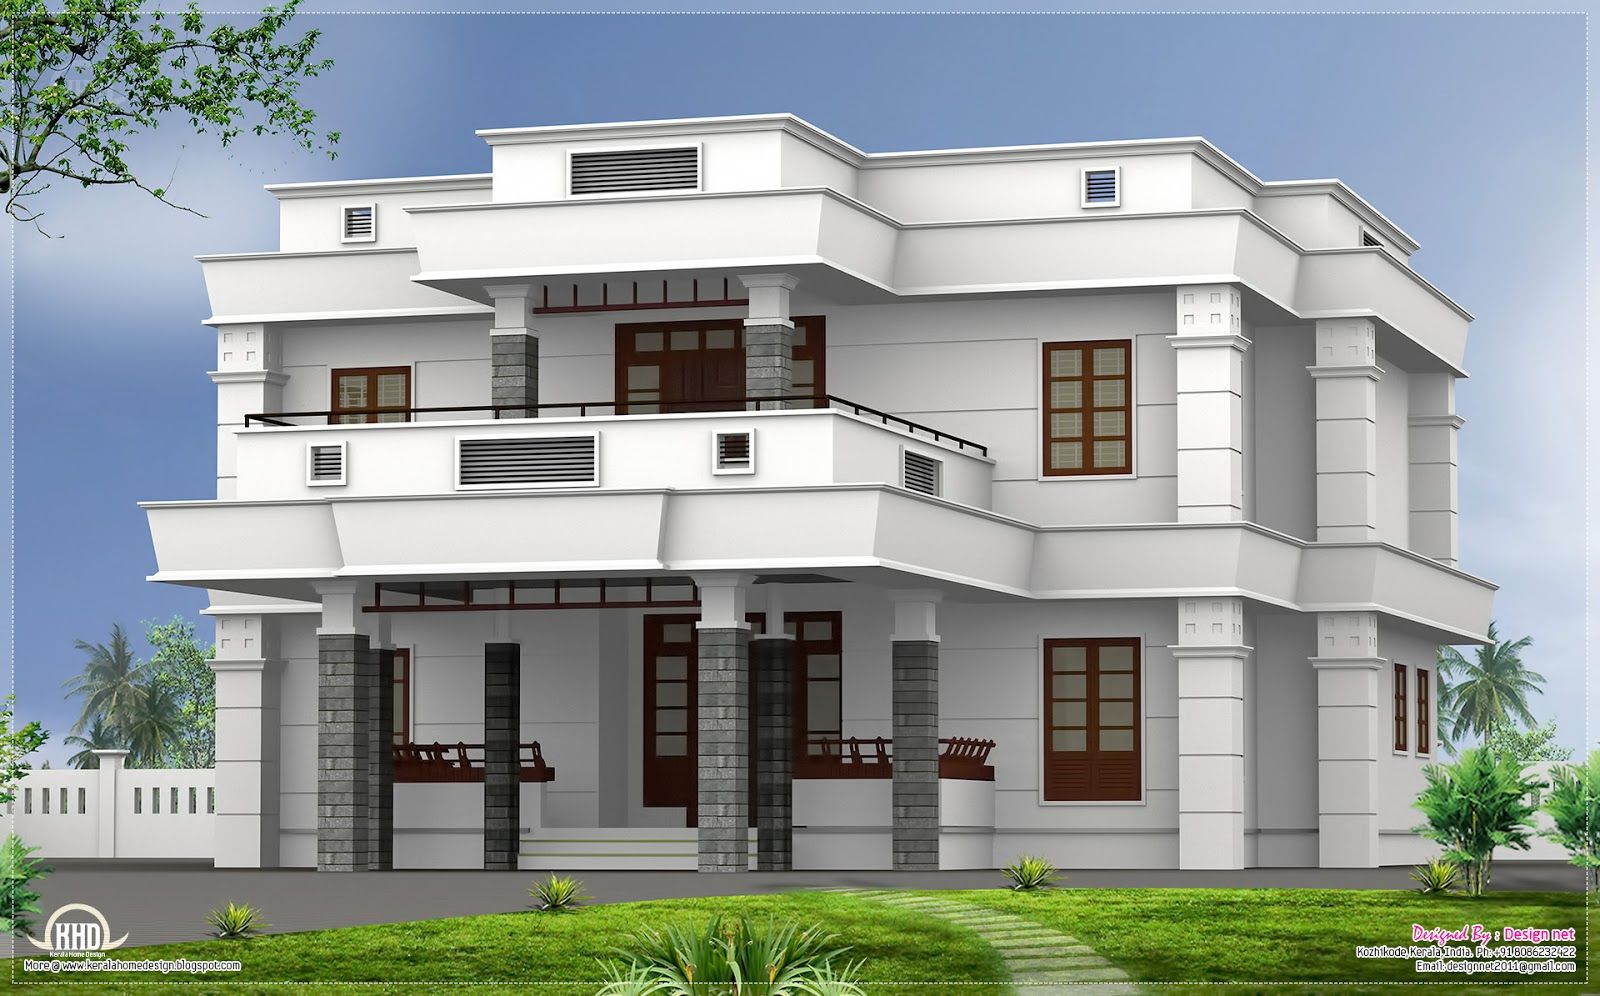 Flat roof homes designs bhk modern flat roof house for Home design exterior india